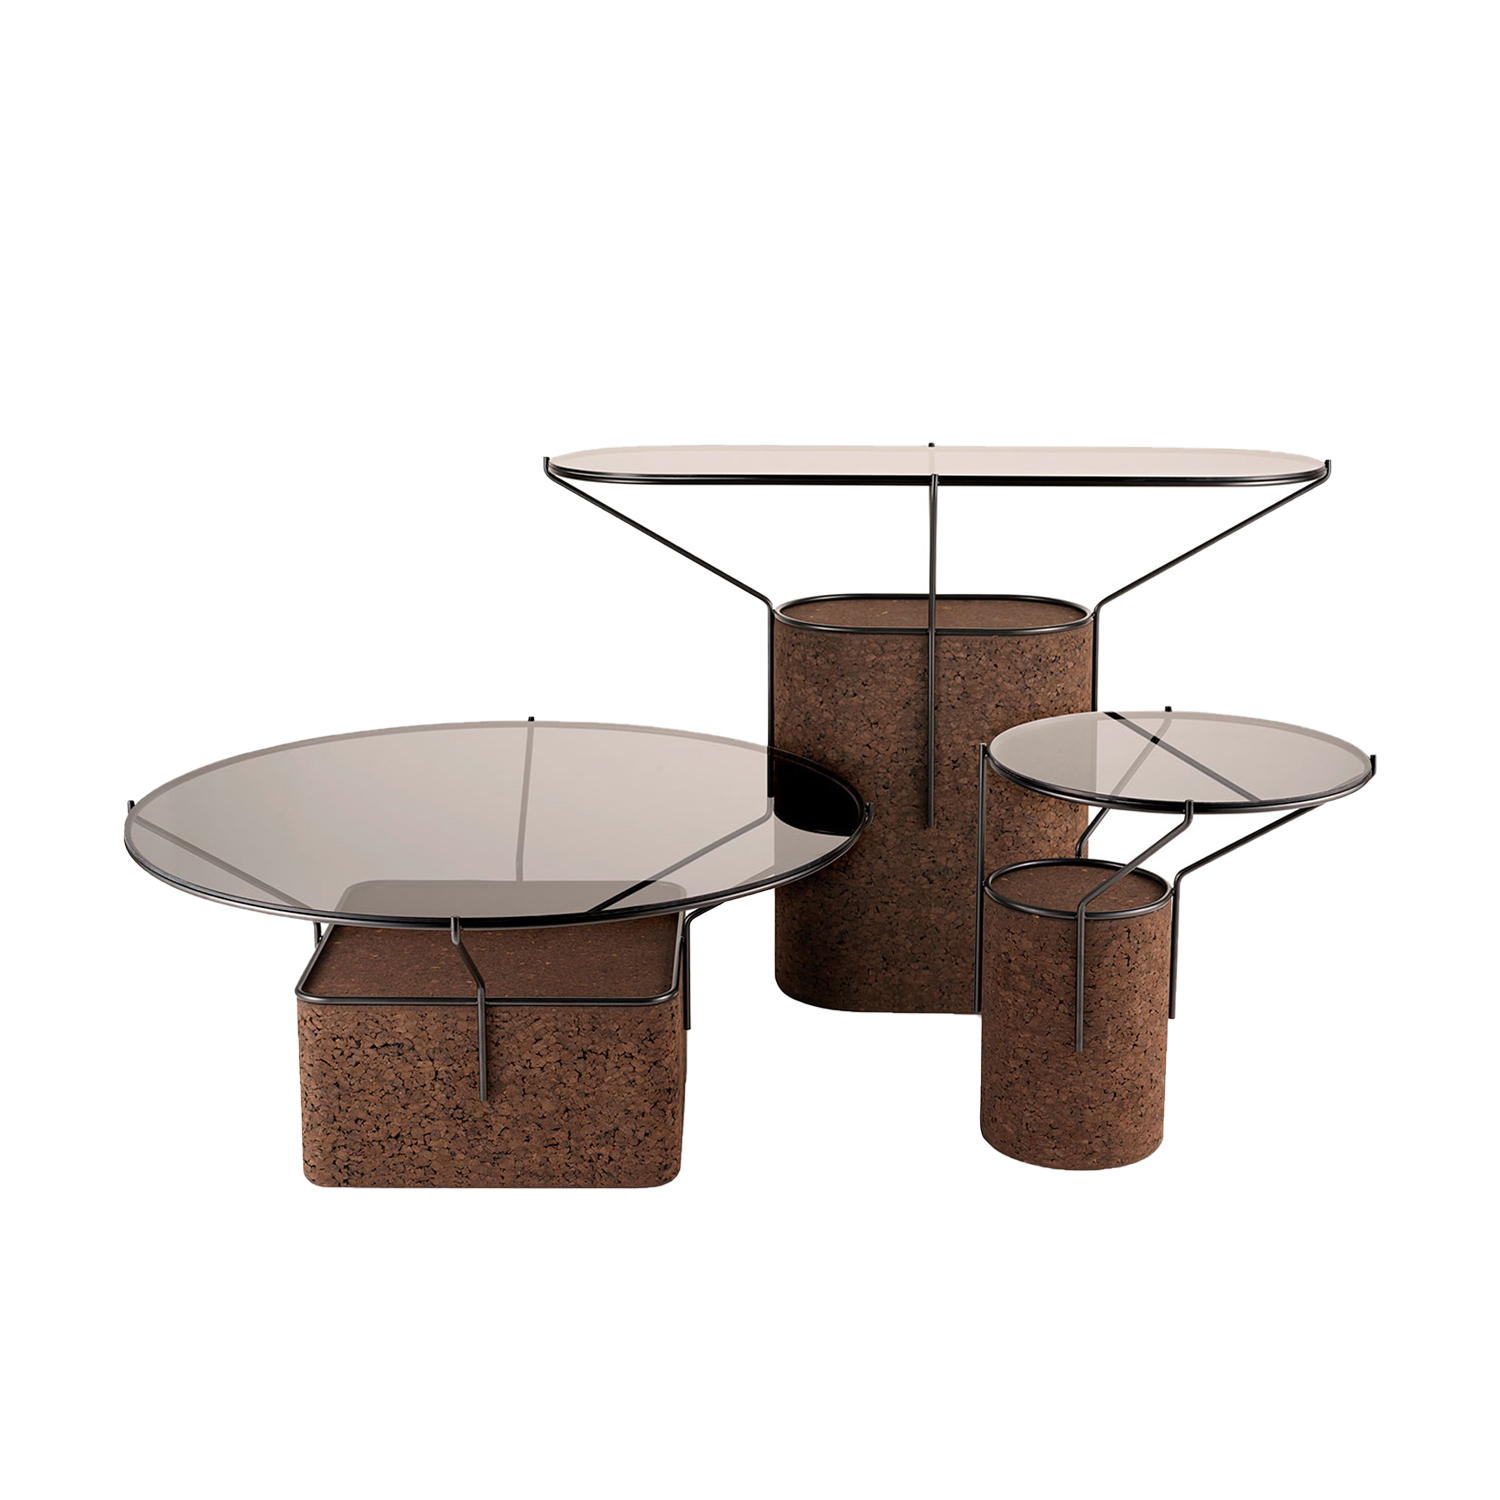 """Frame Side Table - It is only used cork of the branches (falca) for the manufacture of cork granules. These are block clusters in autoclave, being 100% natural process, without use of additives. Technology, developed by Sofalca, consists of injecting water vapour through the pallets that will expand and agglutinate with the resins of the cork itself. This """"cooking"""" gives also dark colour to the agglomerated cork, like chocolate. In the production of steam I used biomass, obtained on milling and cleaning the falca, what makes it truly ecological production and without waste, 95% energy self-sufficient. As a super-material, cork offers so many advantages, because in addition to its excellent thermic, acoustic insulation and anti vibration characteristic, it is also a CO2 sink playing a key-role in the environment.   Matter of Stuff"""